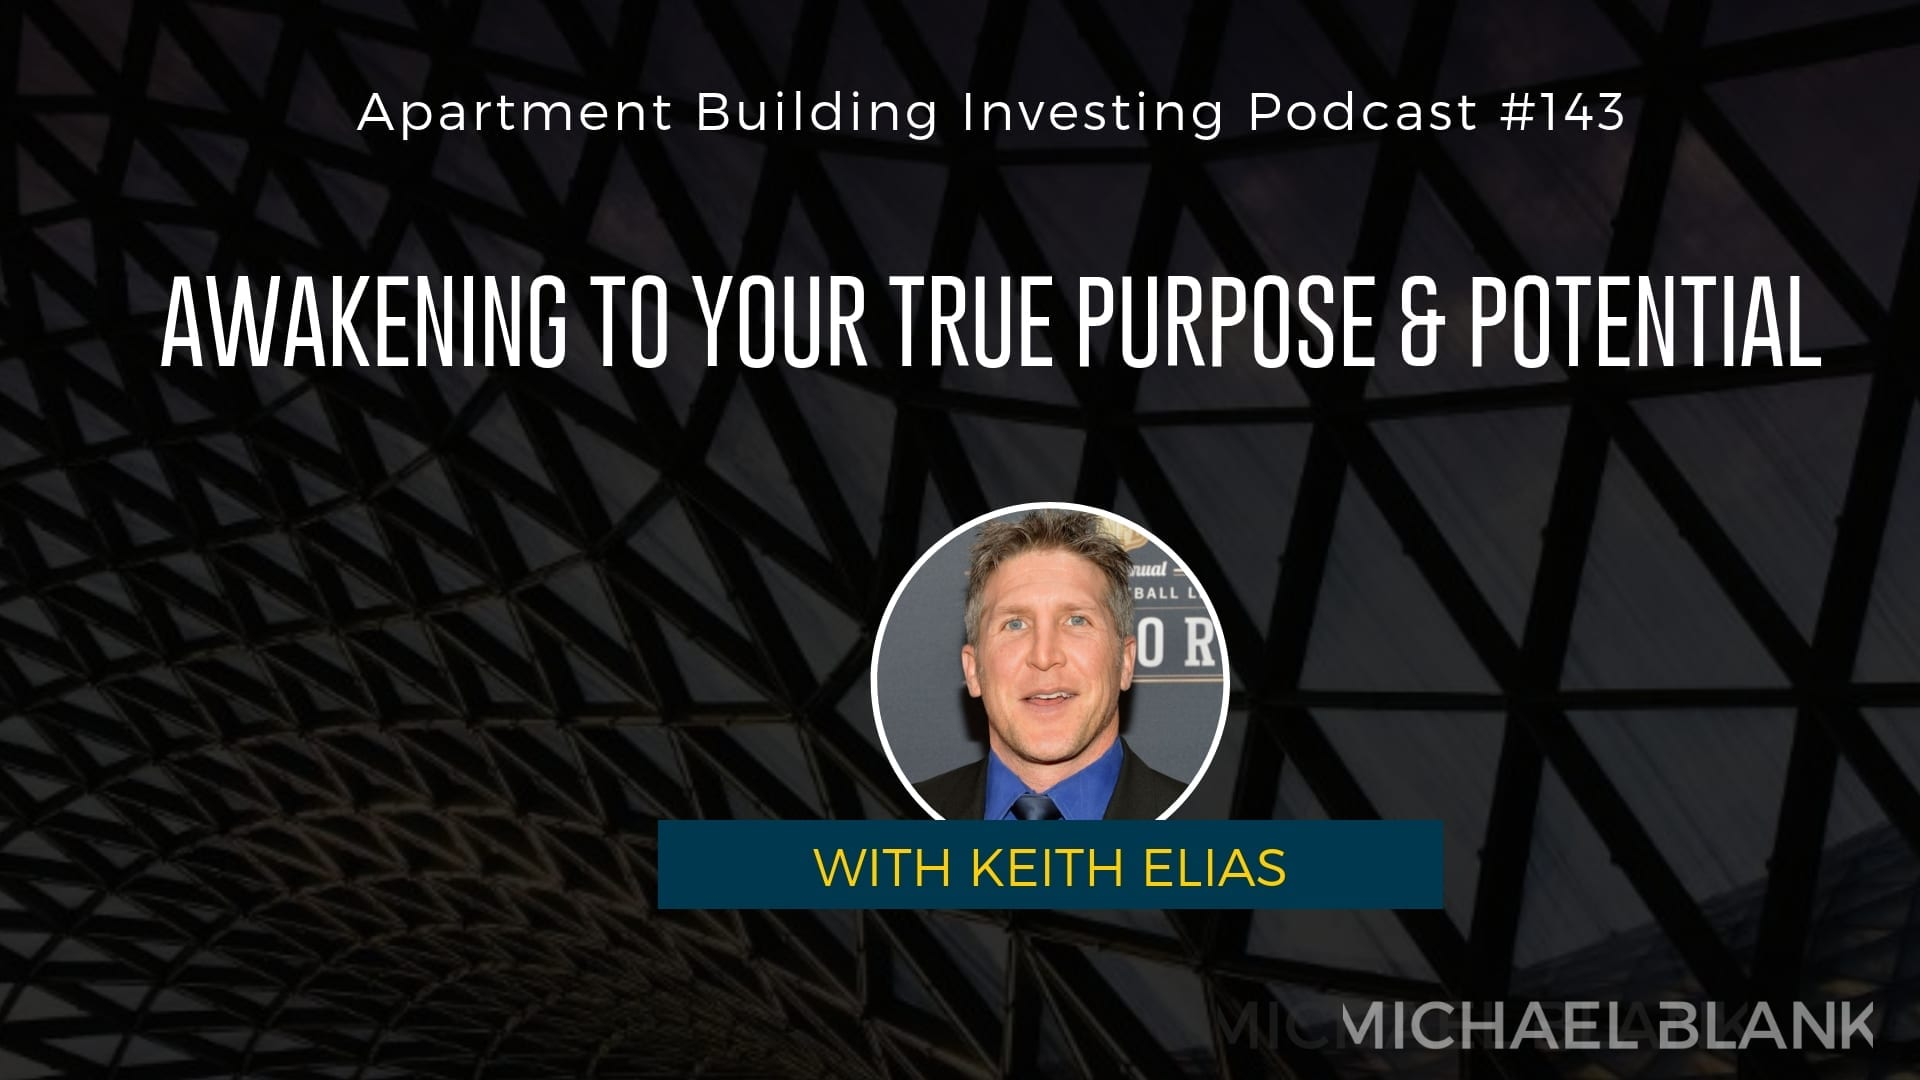 MB 143: Awakening to Your True Purpose & Potential – With Keith Elias